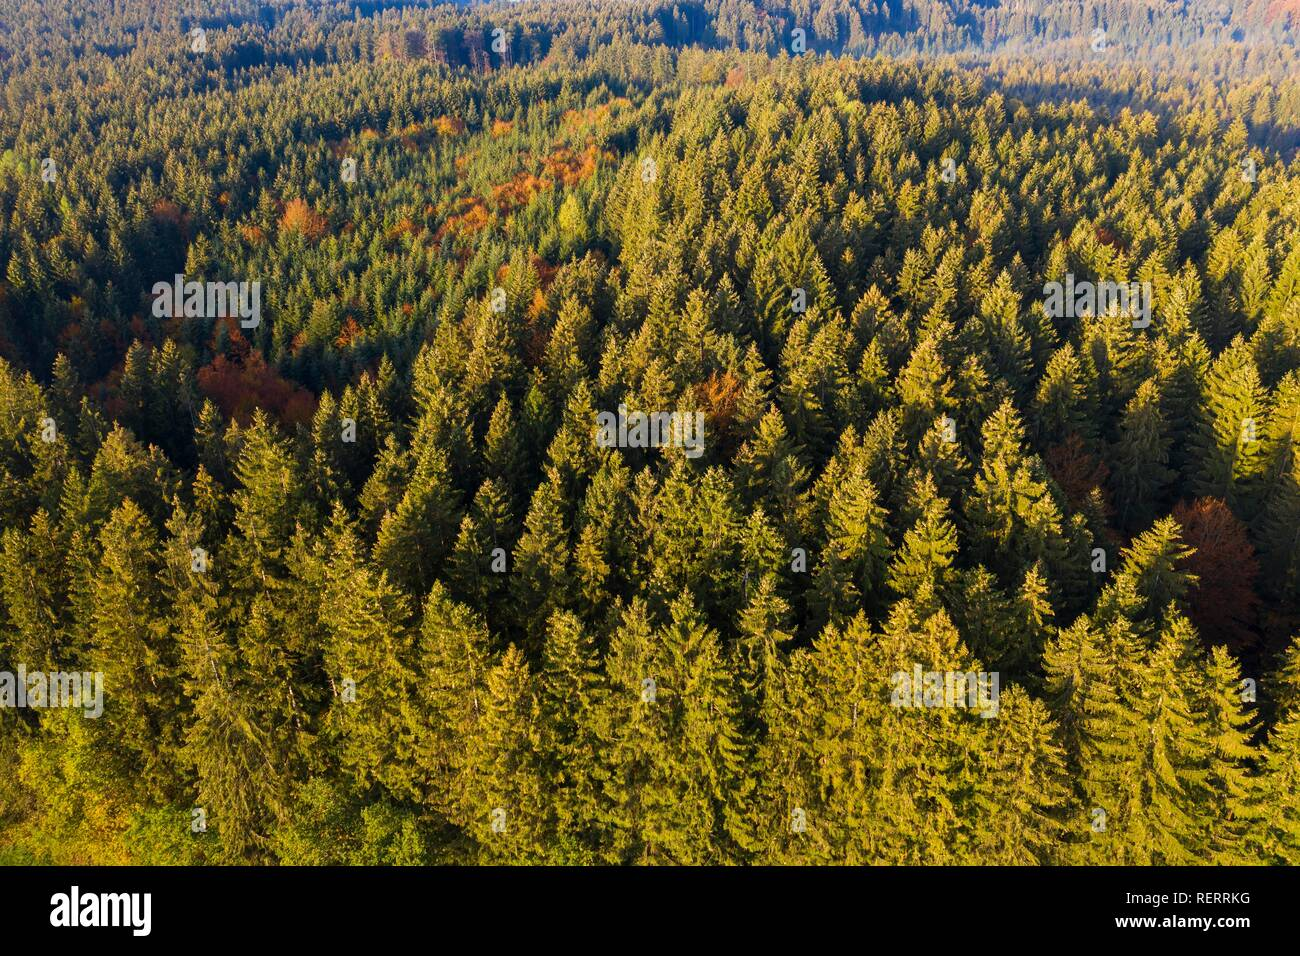 Spruce forest, near Dietramszell, drone view, Upper Bavaria, Bavaria, Germany - Stock Image